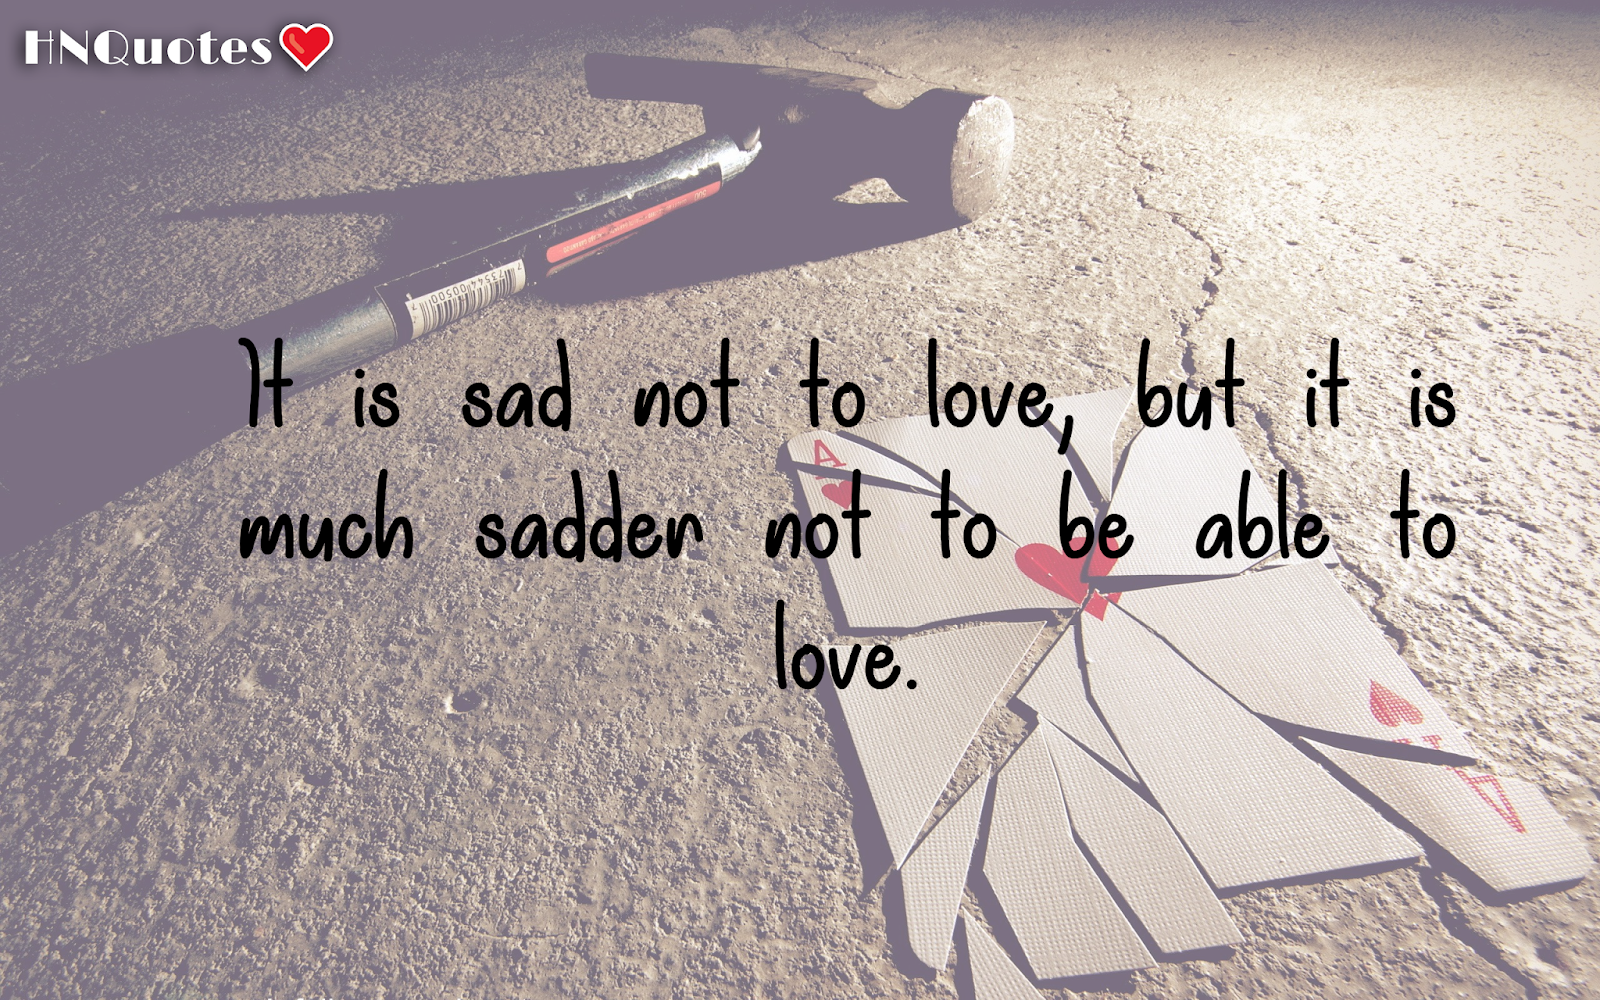 Sadness Quotes | Sad Love Quotes | Sad Images | HNQuotes